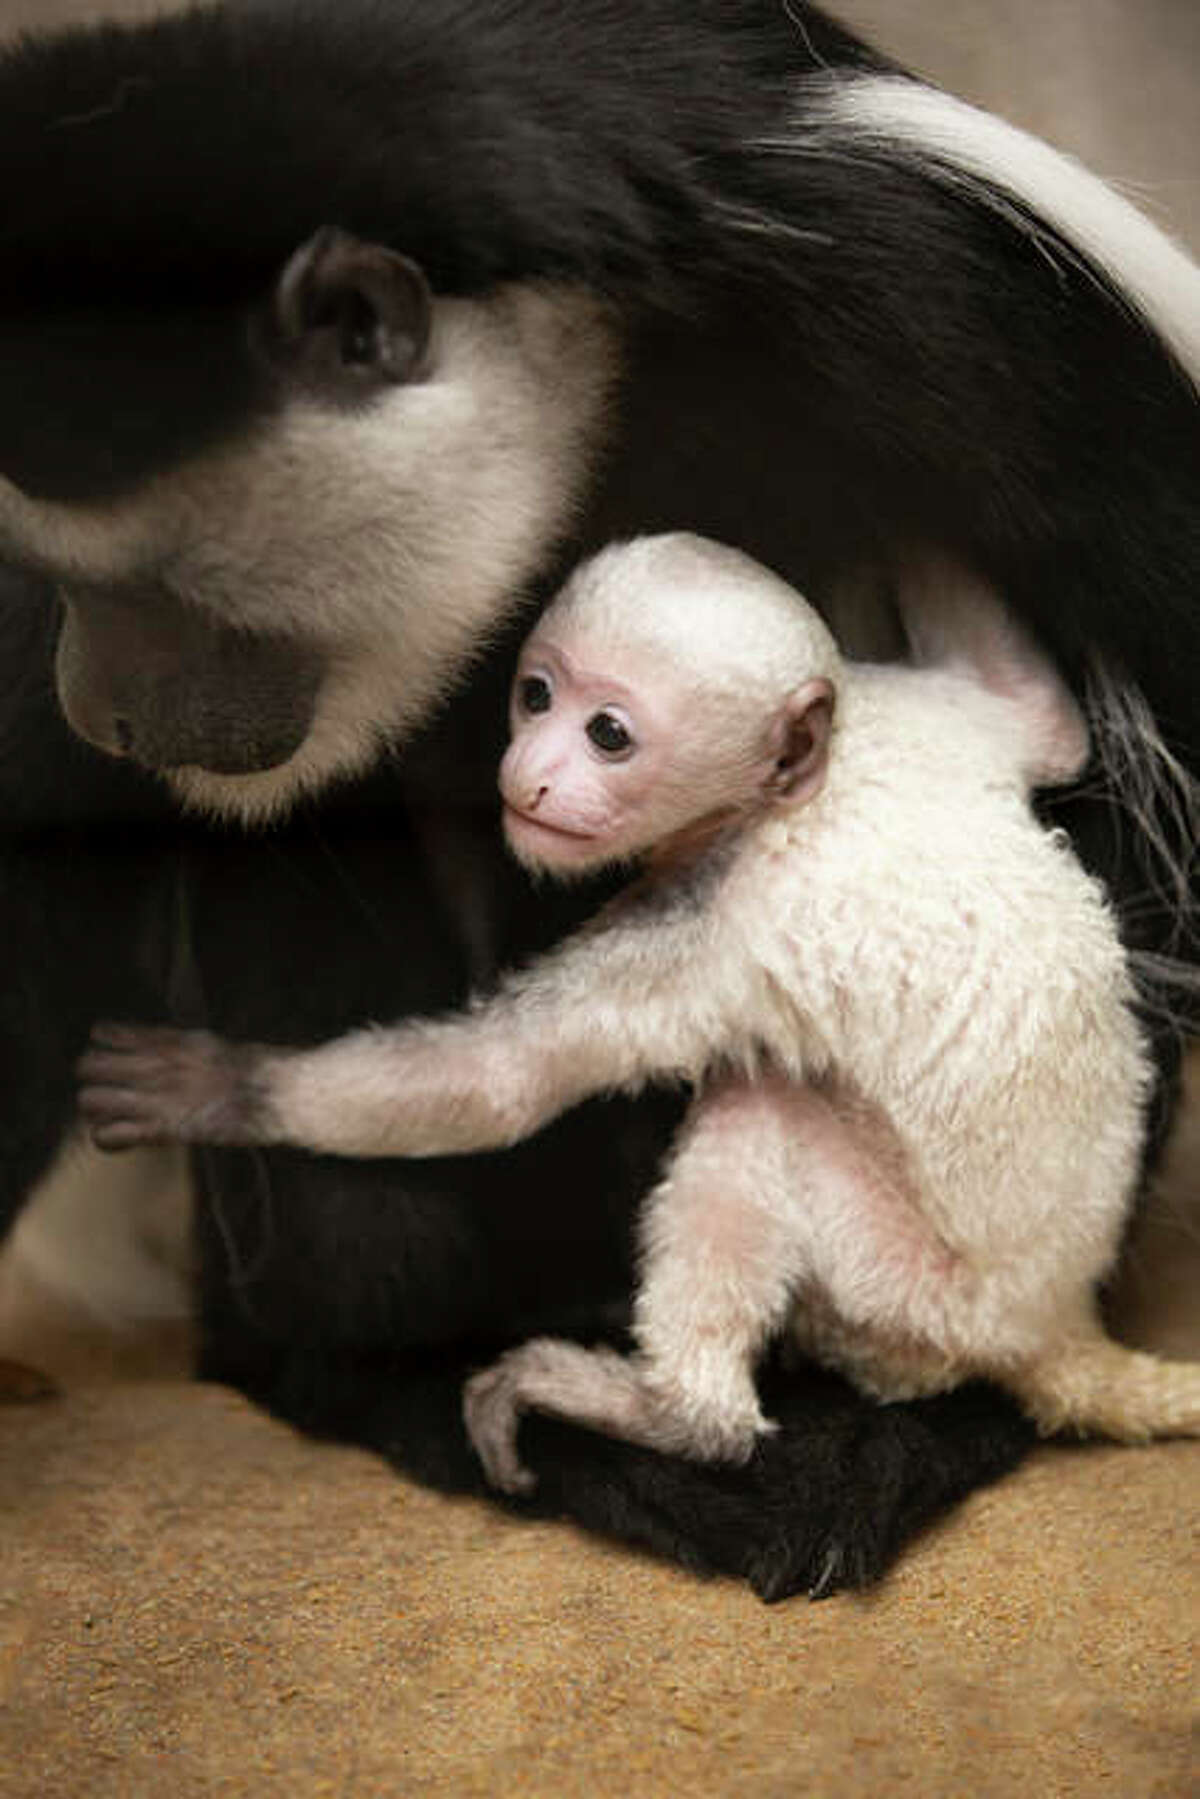 Teak, a baby guereza colobus monkey, was born Feb. 3 at the Saint Louis Zoo, as part of the Association of Zoos and Aquariums (AZA) cooperatively managed Species Survival Plan Program. He mostly nurses and sleeps, but lately visitors can spot the male completely white monkey with his large family during regular zoo hours at the Primate House.